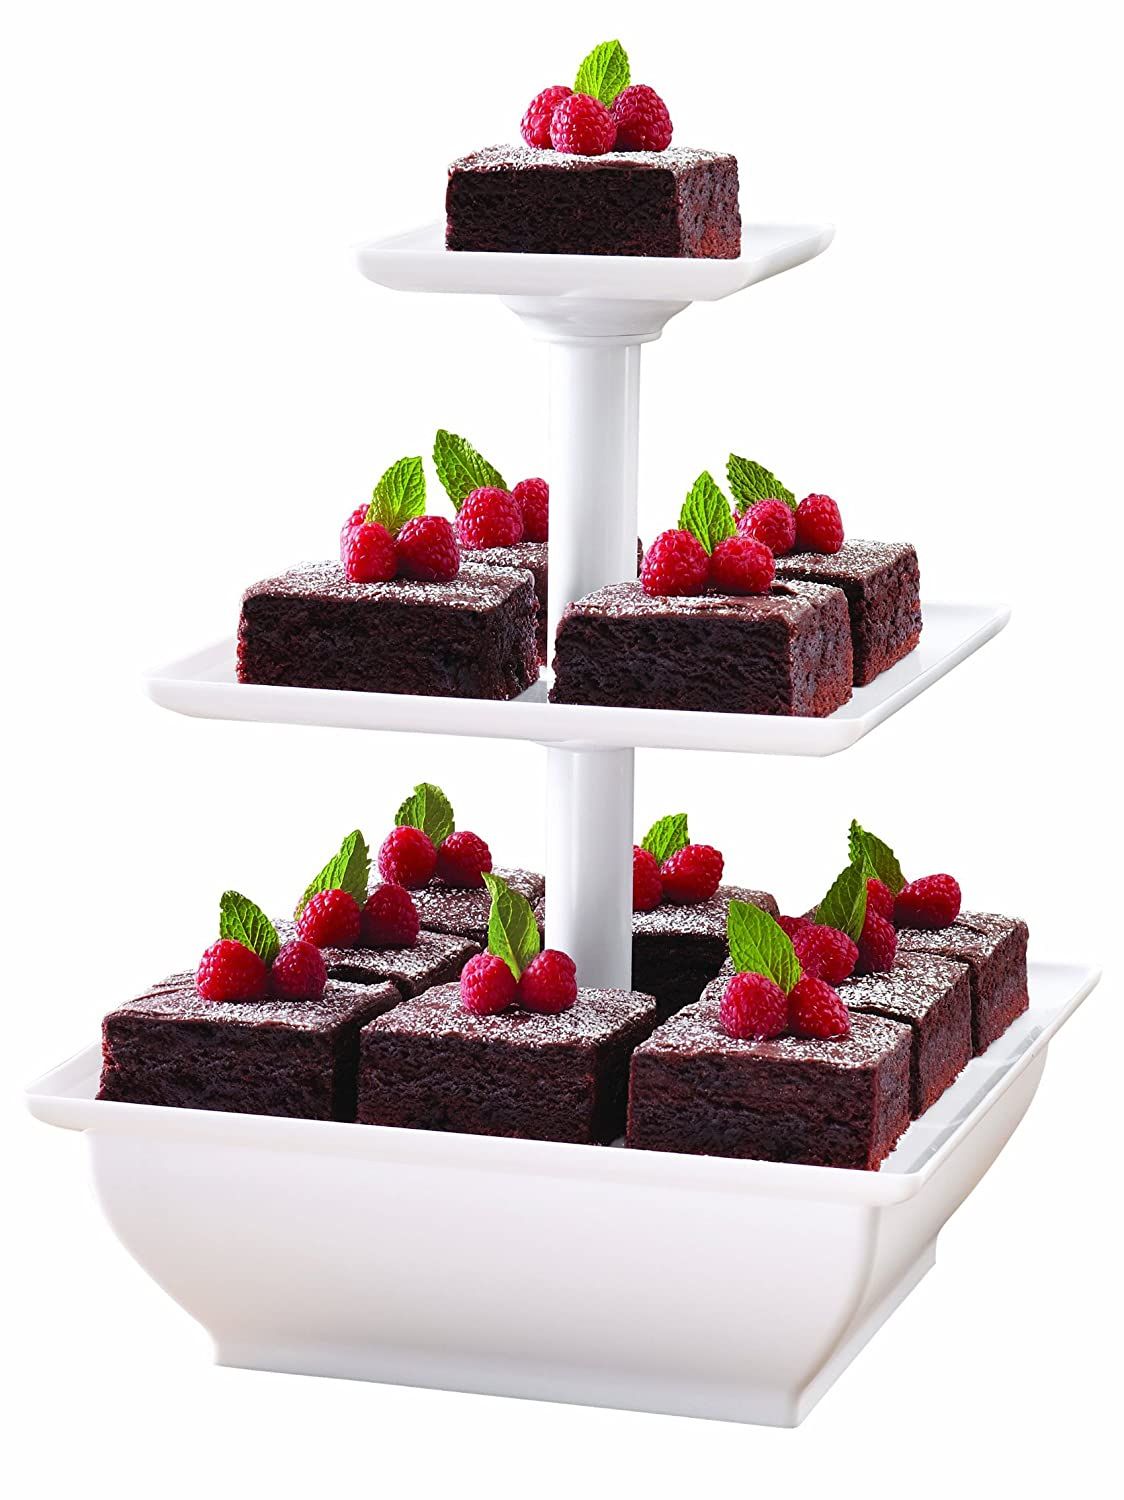 new tiered dessert cupcake tower 3 plate holder tier party snack cake stand ebay. Black Bedroom Furniture Sets. Home Design Ideas